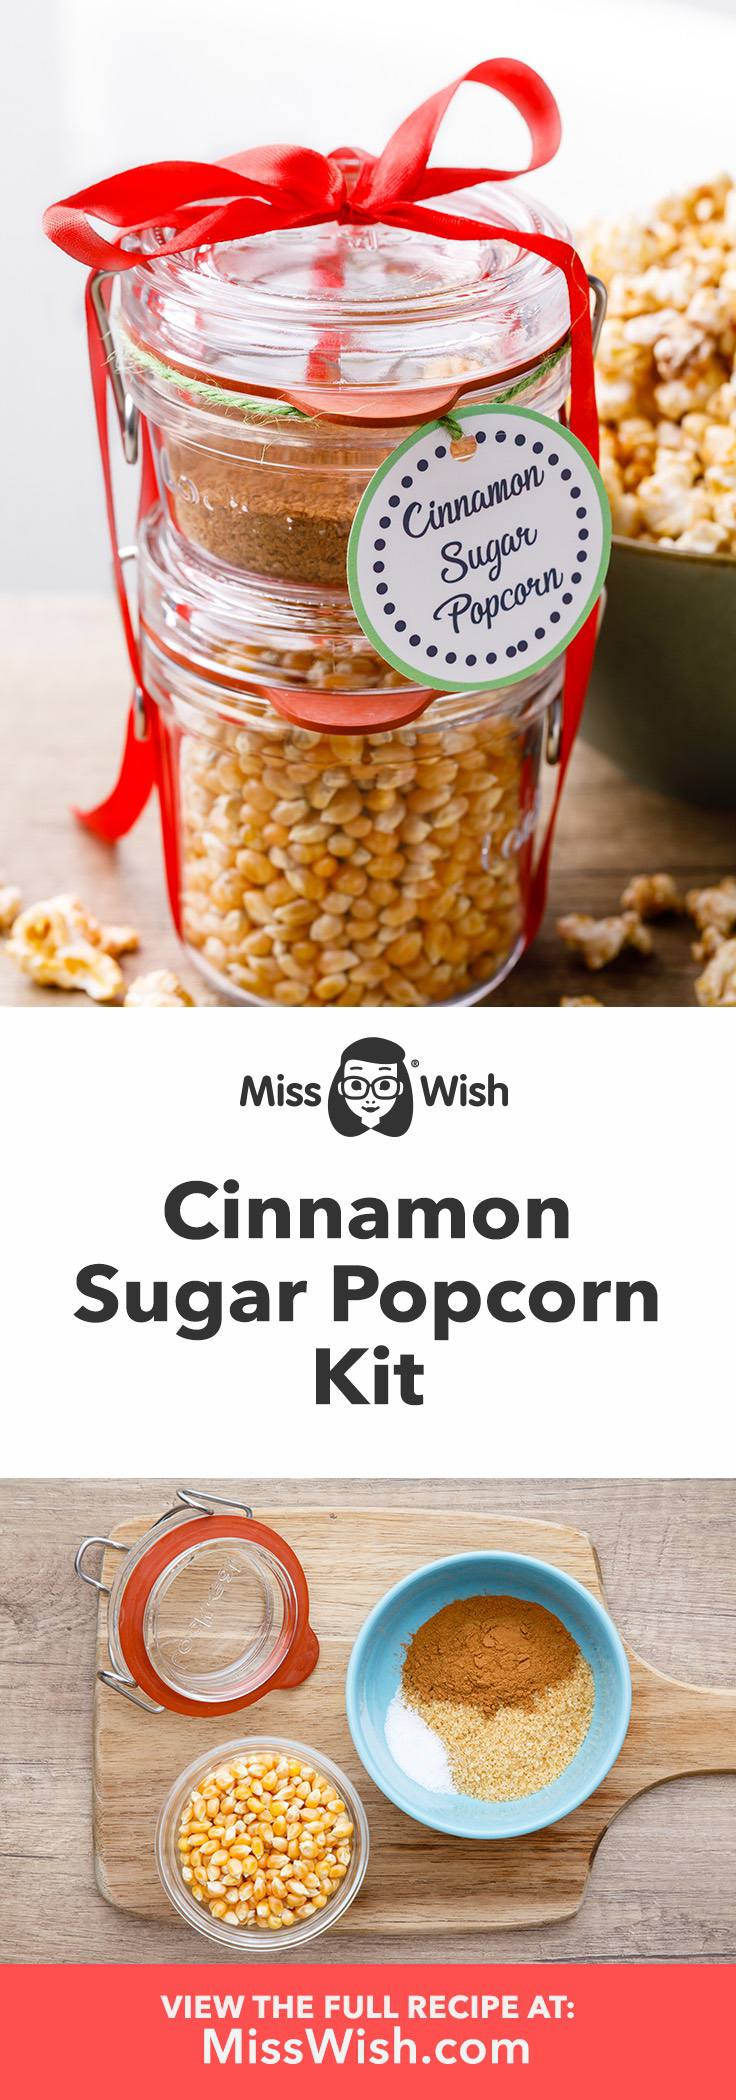 Easy diy cinnamon sugar popcorn gift kit.